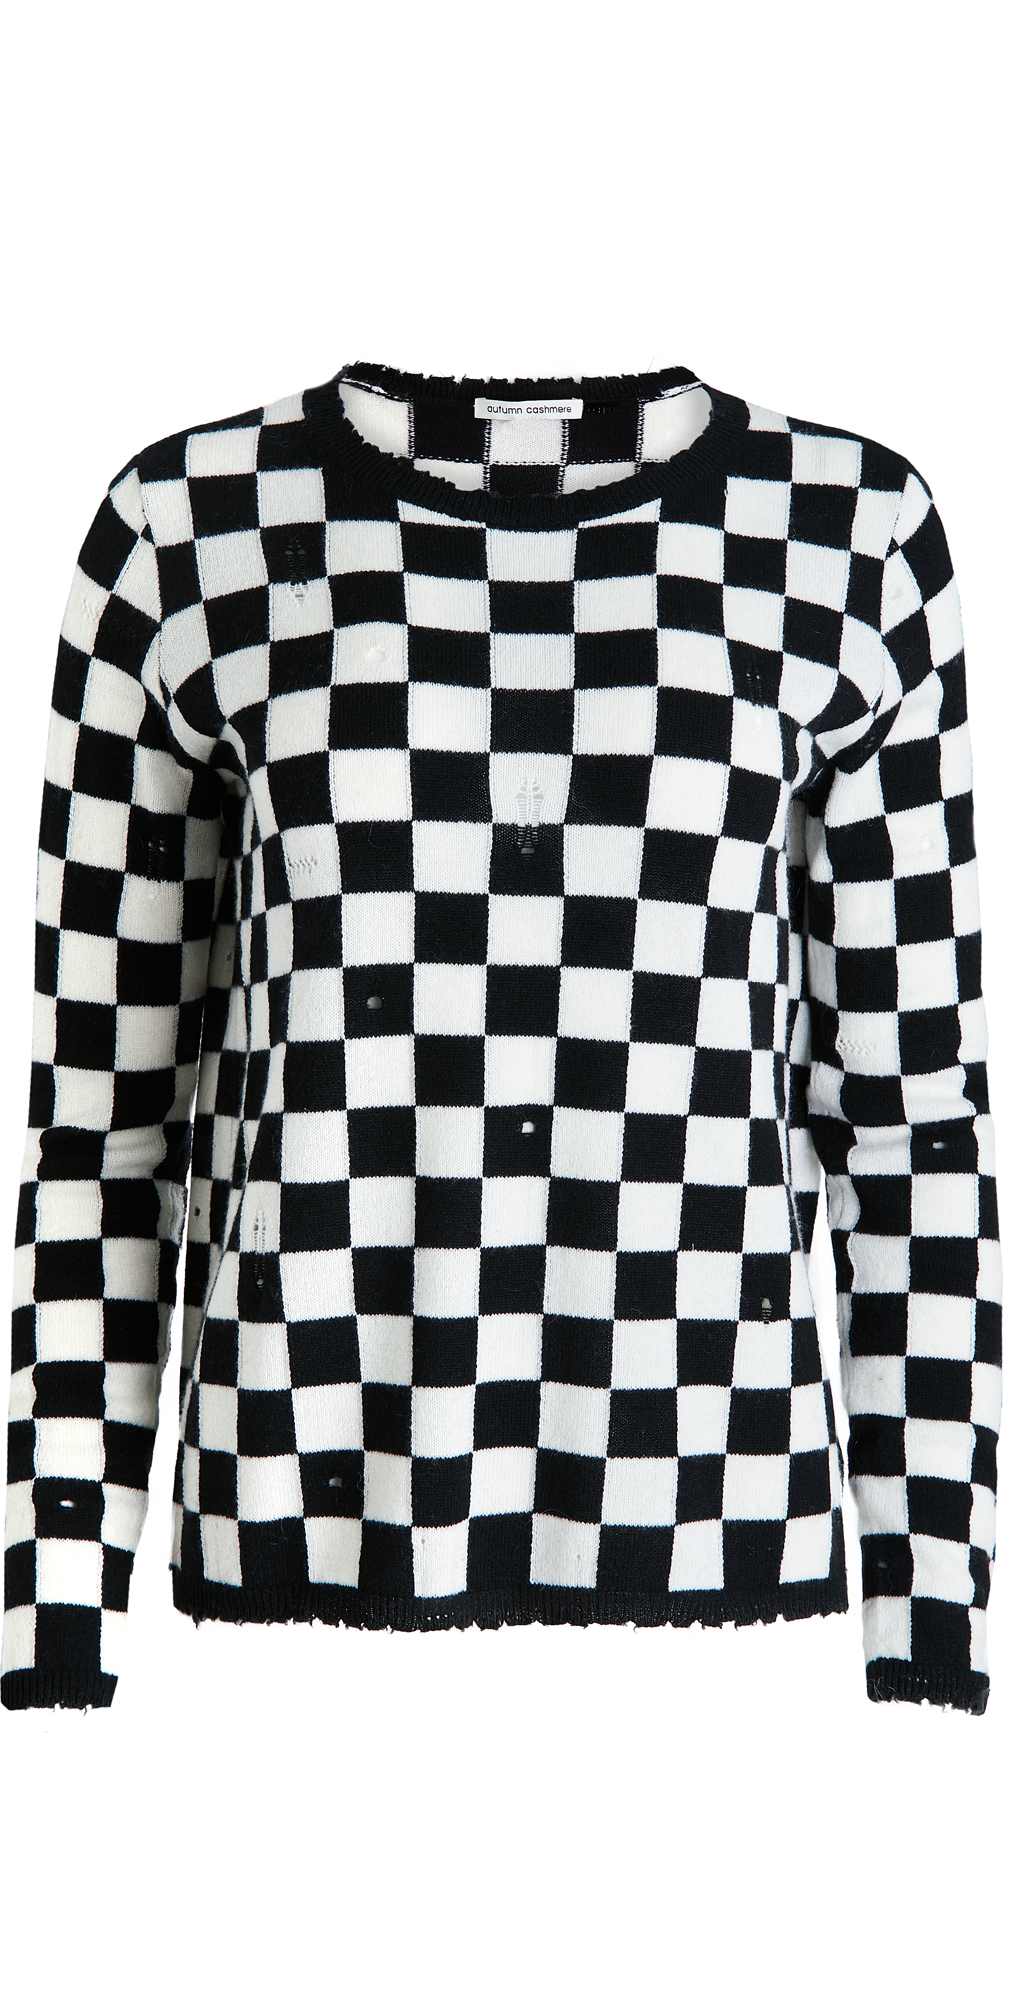 Autumn Cashmere Distressed Checkerboard Cashmere Crew Sweater